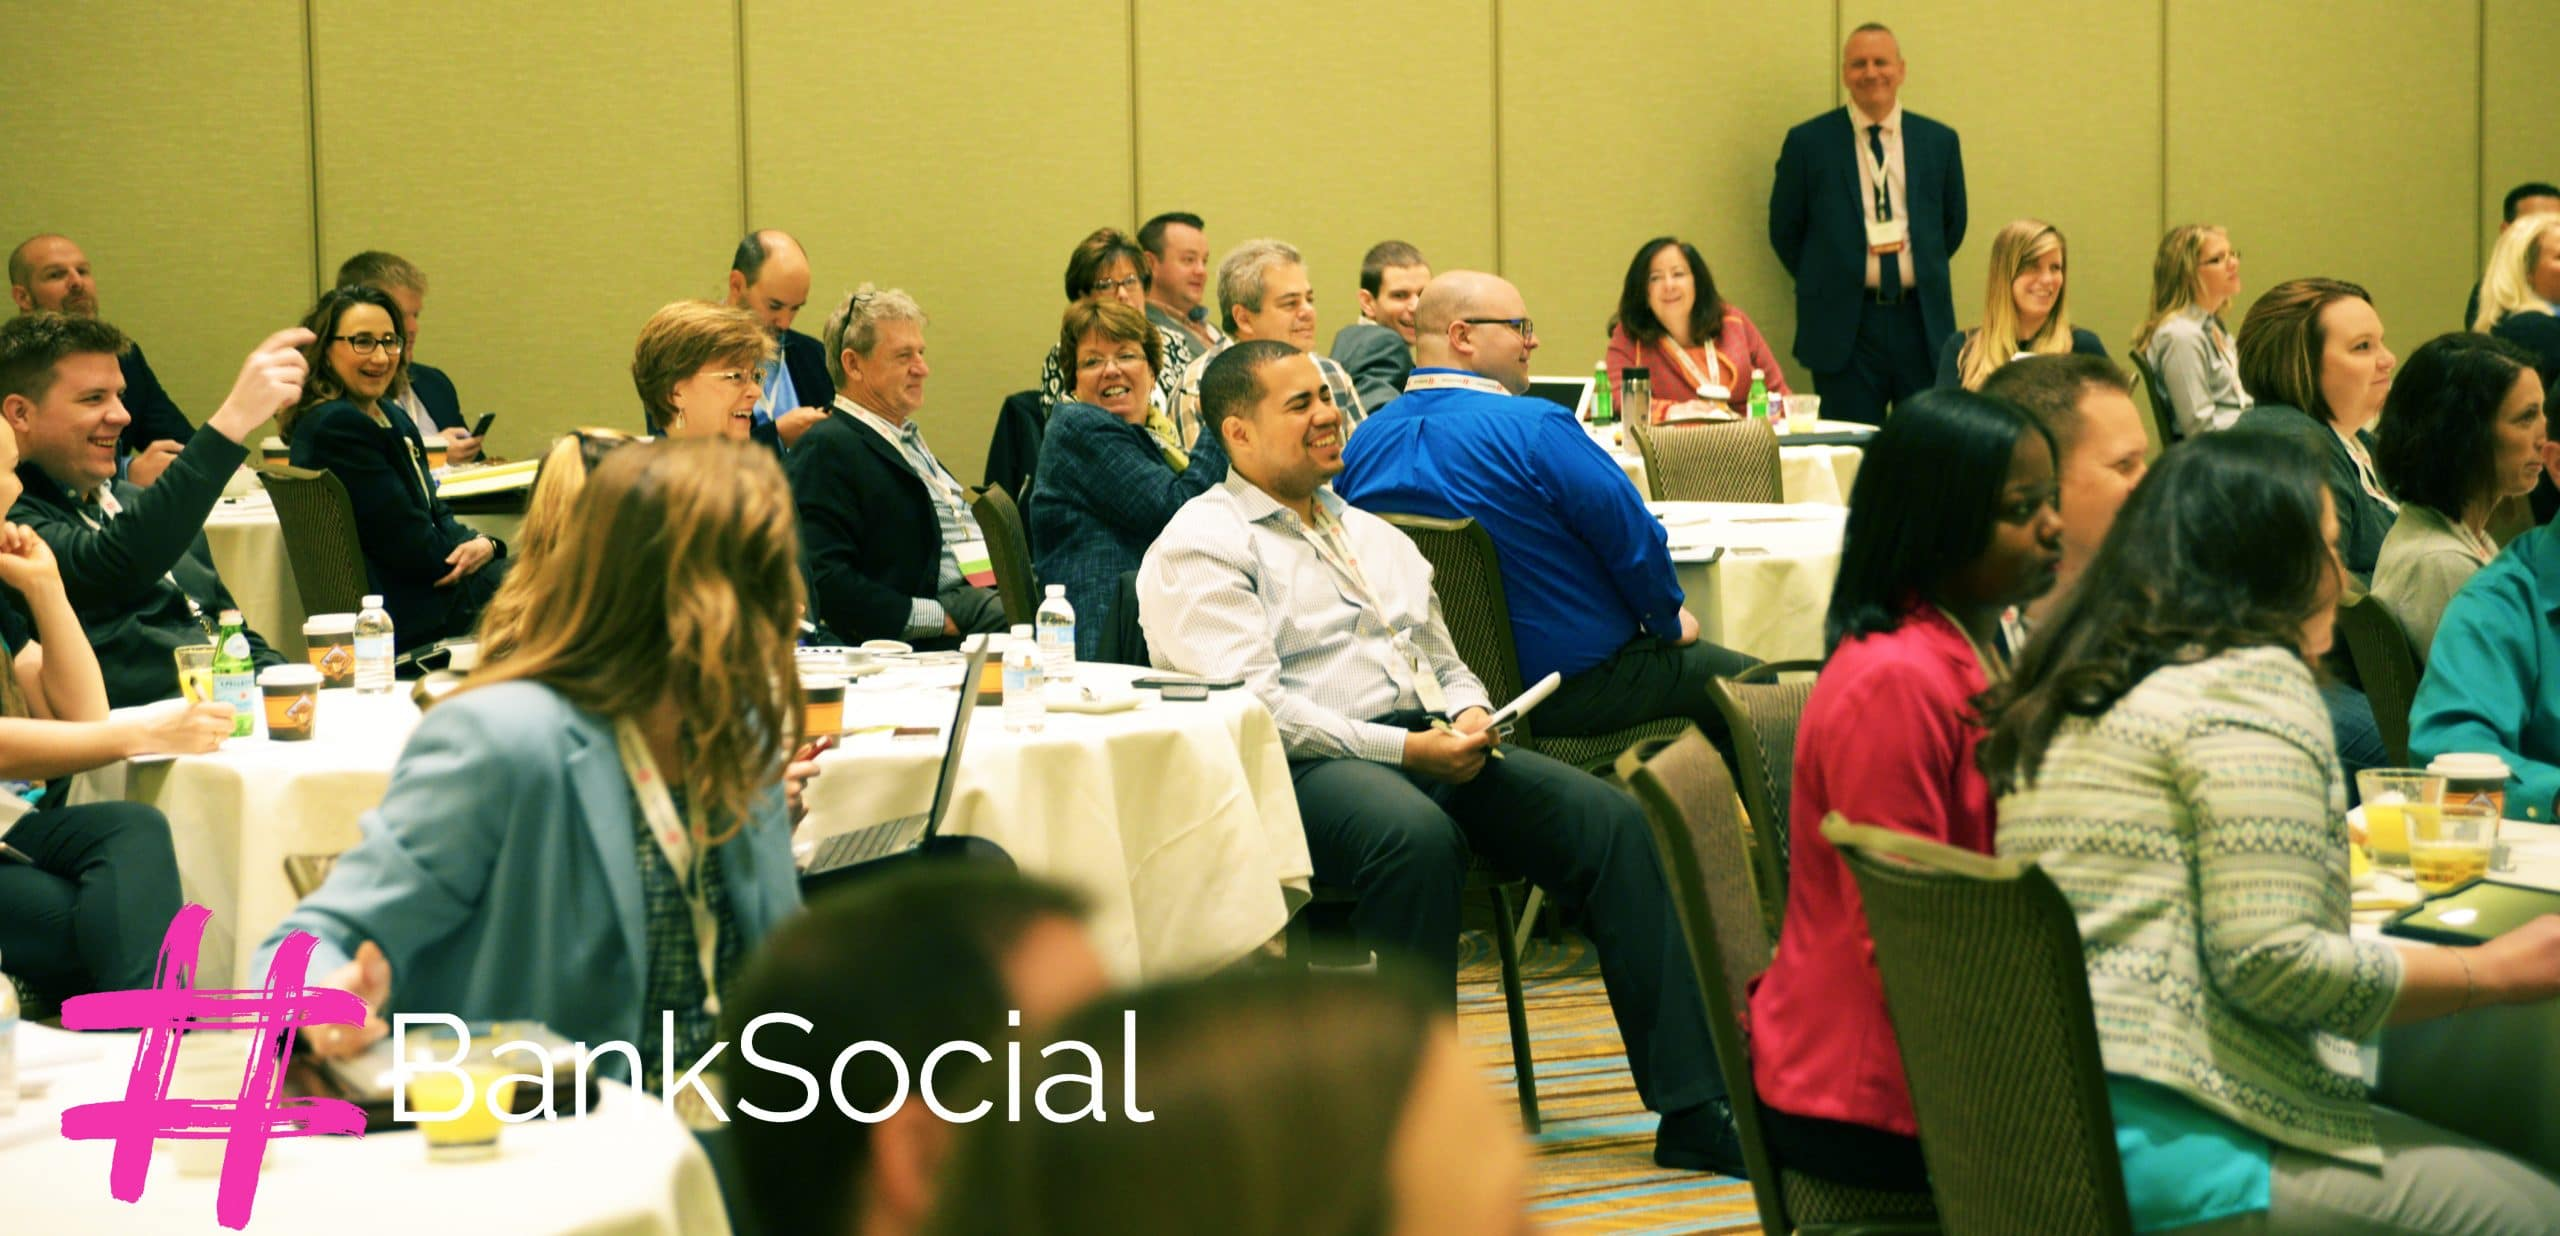 banksocial-conference-crowd